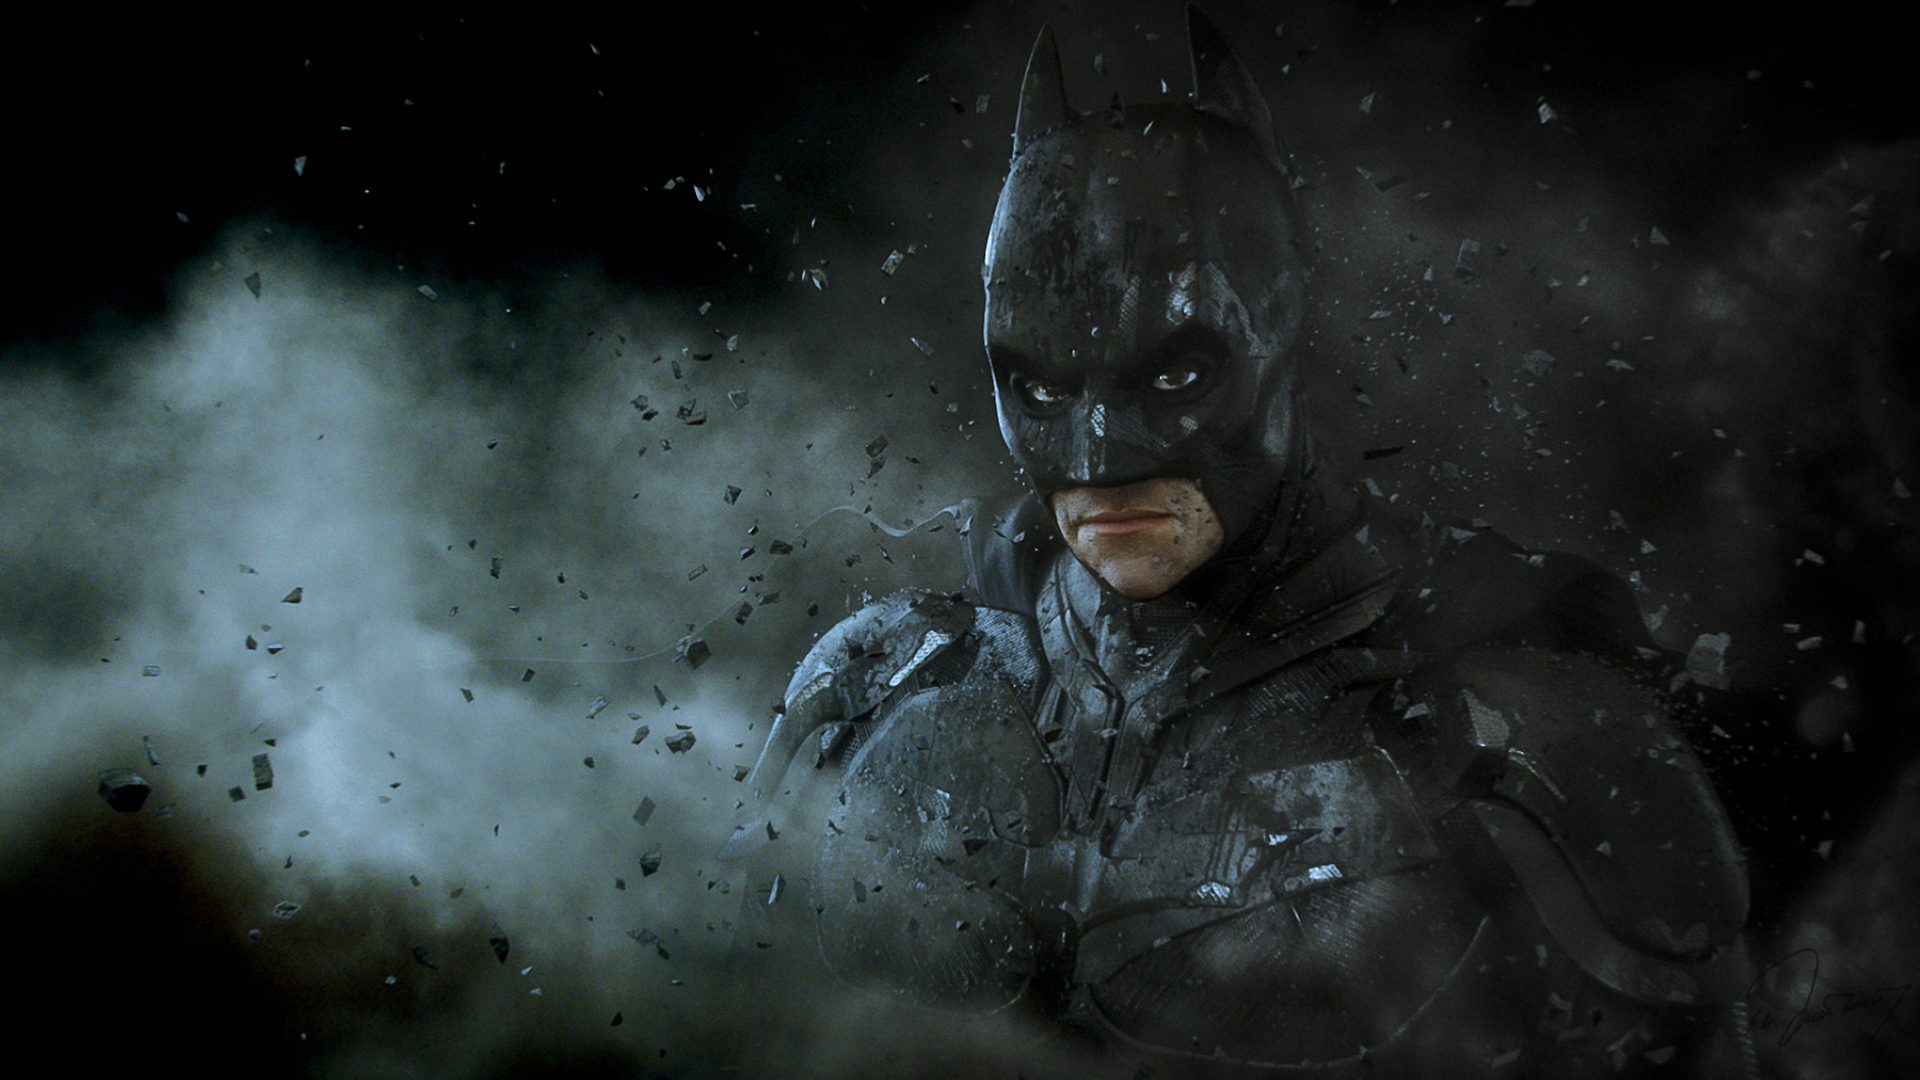 41209 download wallpaper Cinema, Batman screensavers and pictures for free